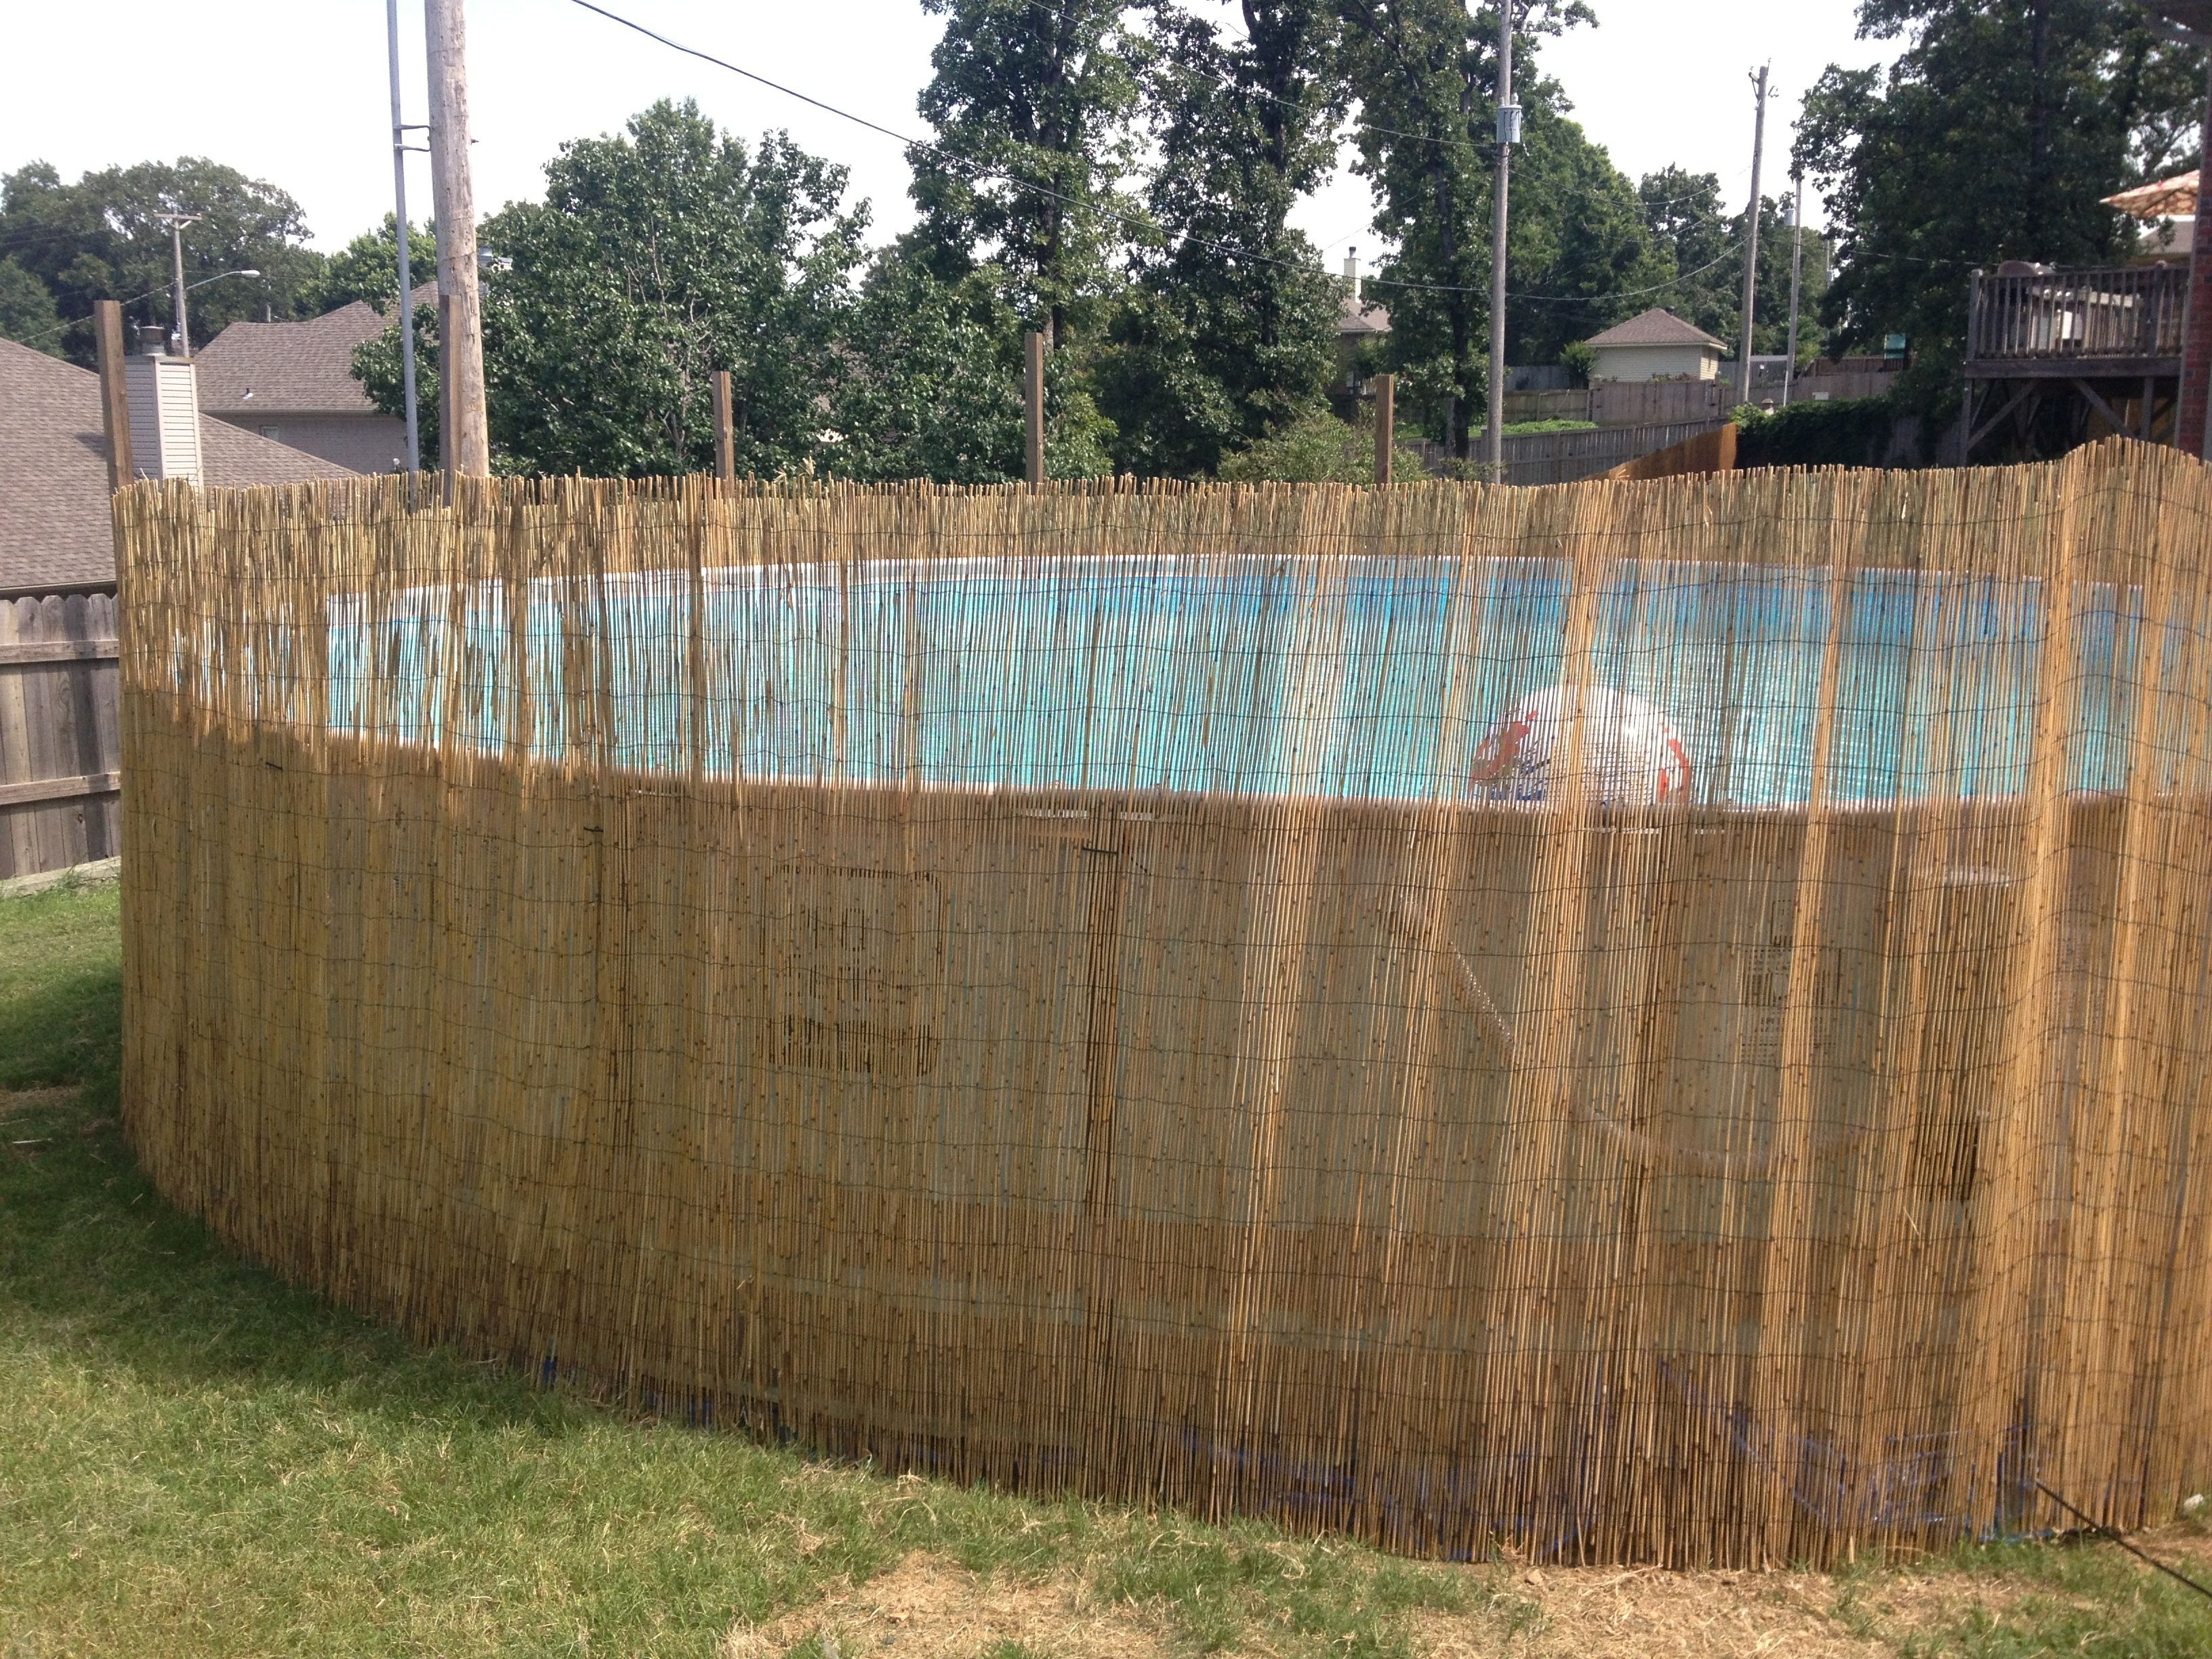 Pool Fences Are Ideal For Personal Privacy Along With Protection Yet You Can Still Apprec Above Ground Pool Above Ground Pool Fence Small Outdoor Patios